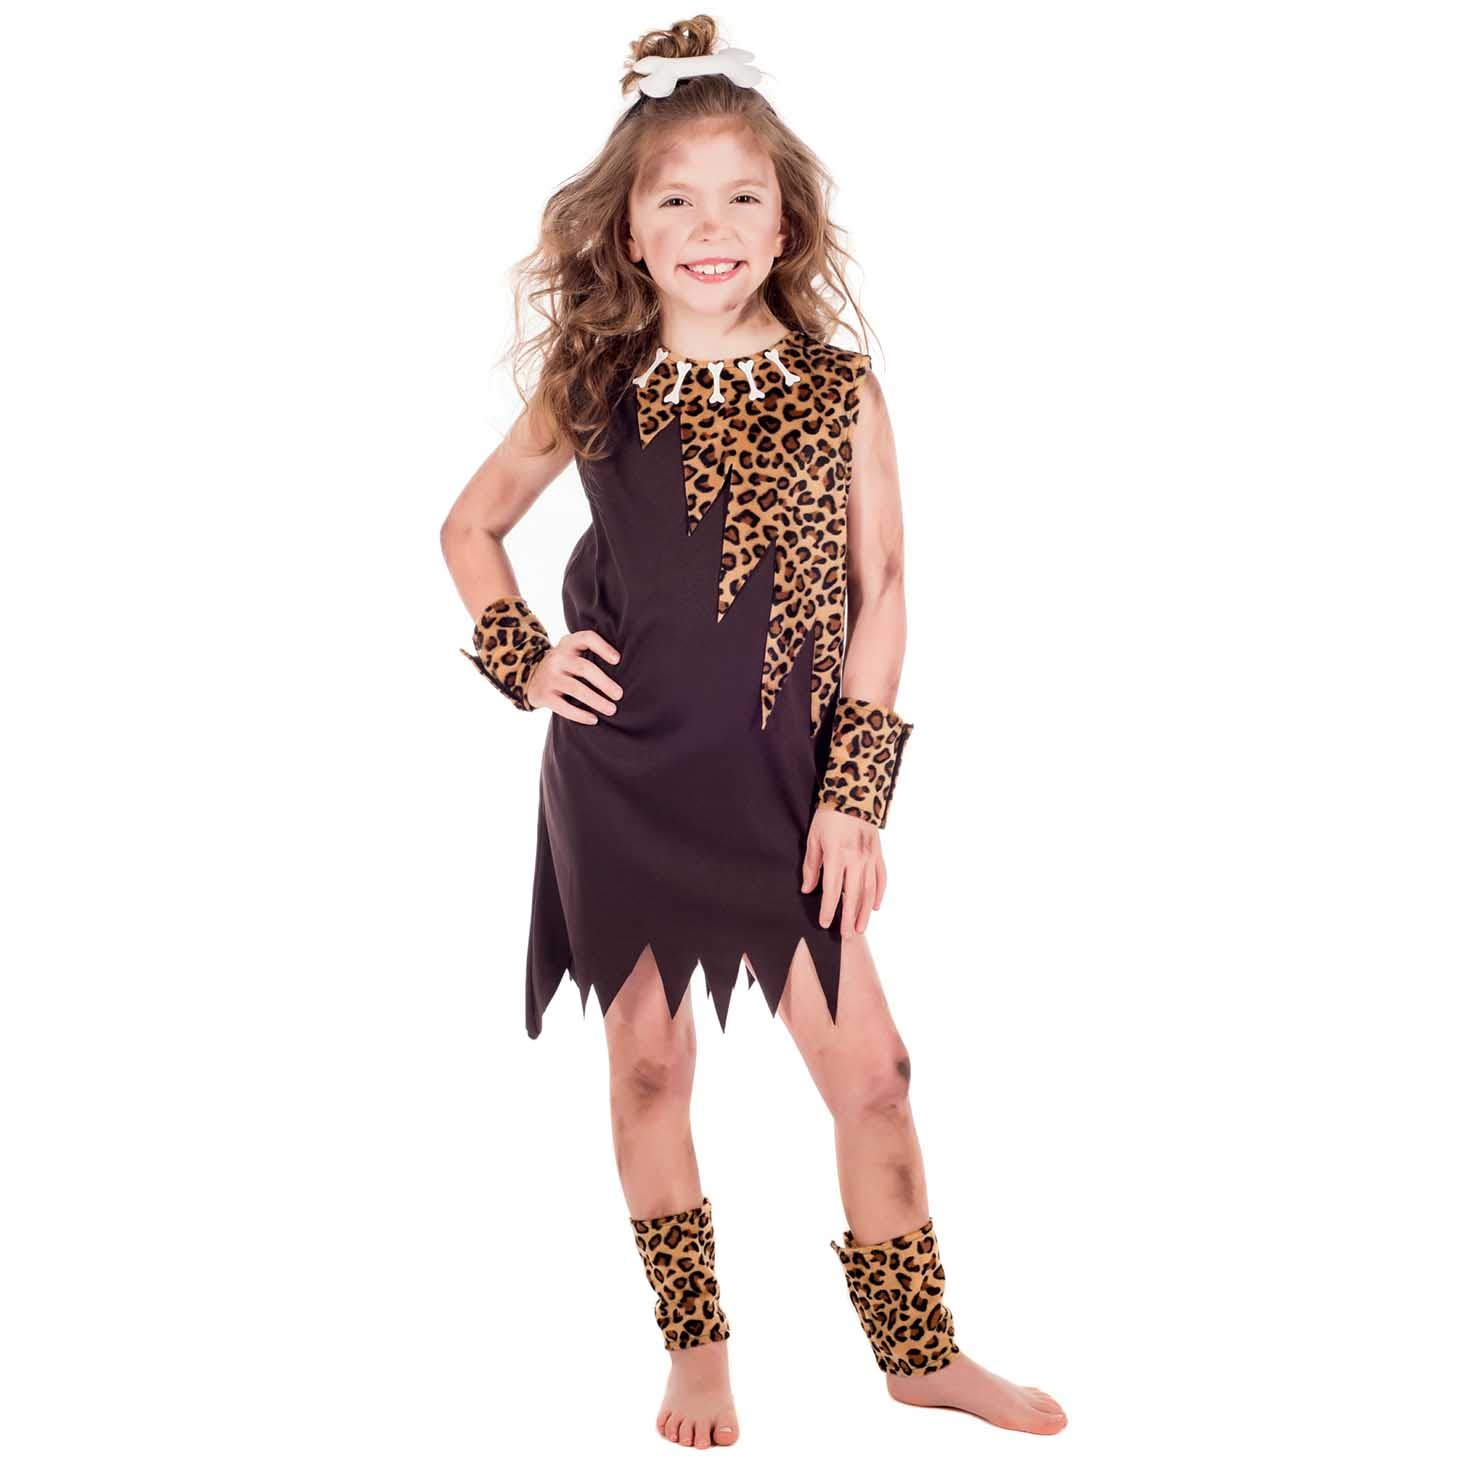 Childs Caveman Costume Boys Girls Cave Girl Boy Fancy Dress Historic Kids Outfit